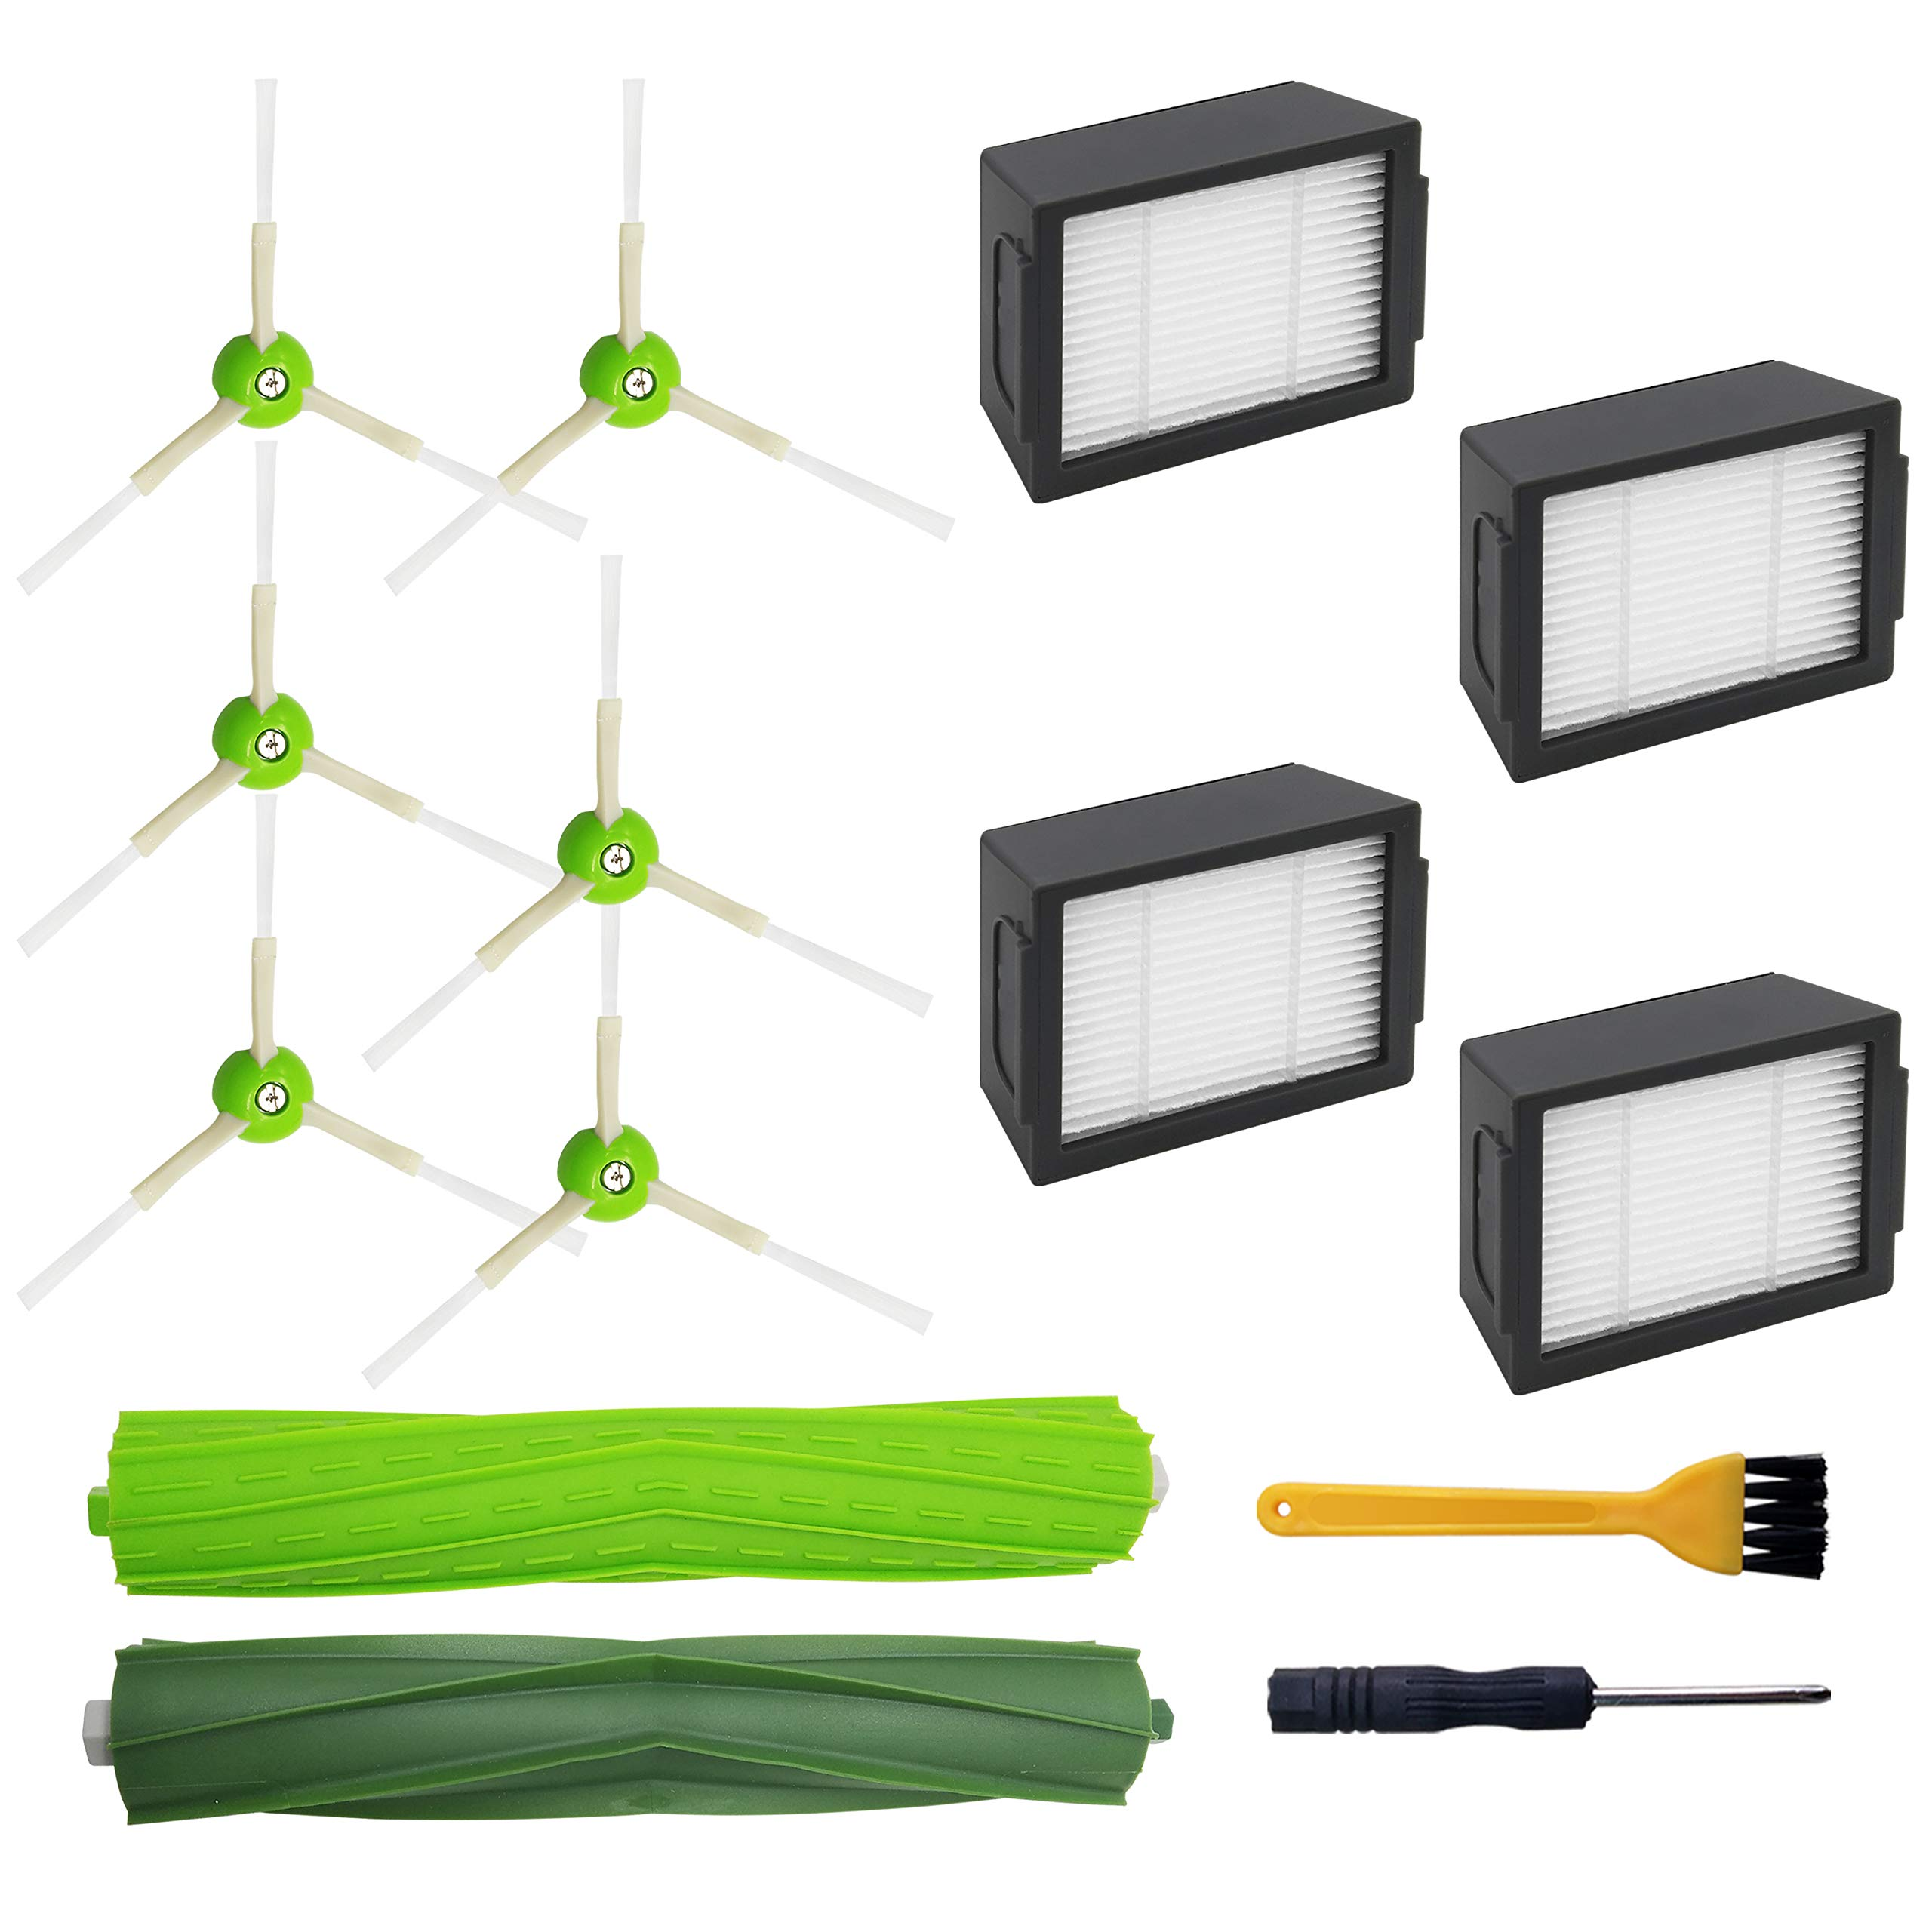 IBosins Replacement Parts Compatible with iRobot Roomba, 4 High-Efficiency Filters, 6 Edge-Sweeping Brushes, 1 Set of Multi-Surface Rubber Brushes for iRobot Roomba i7, i7+, E5, E6, E7 Series